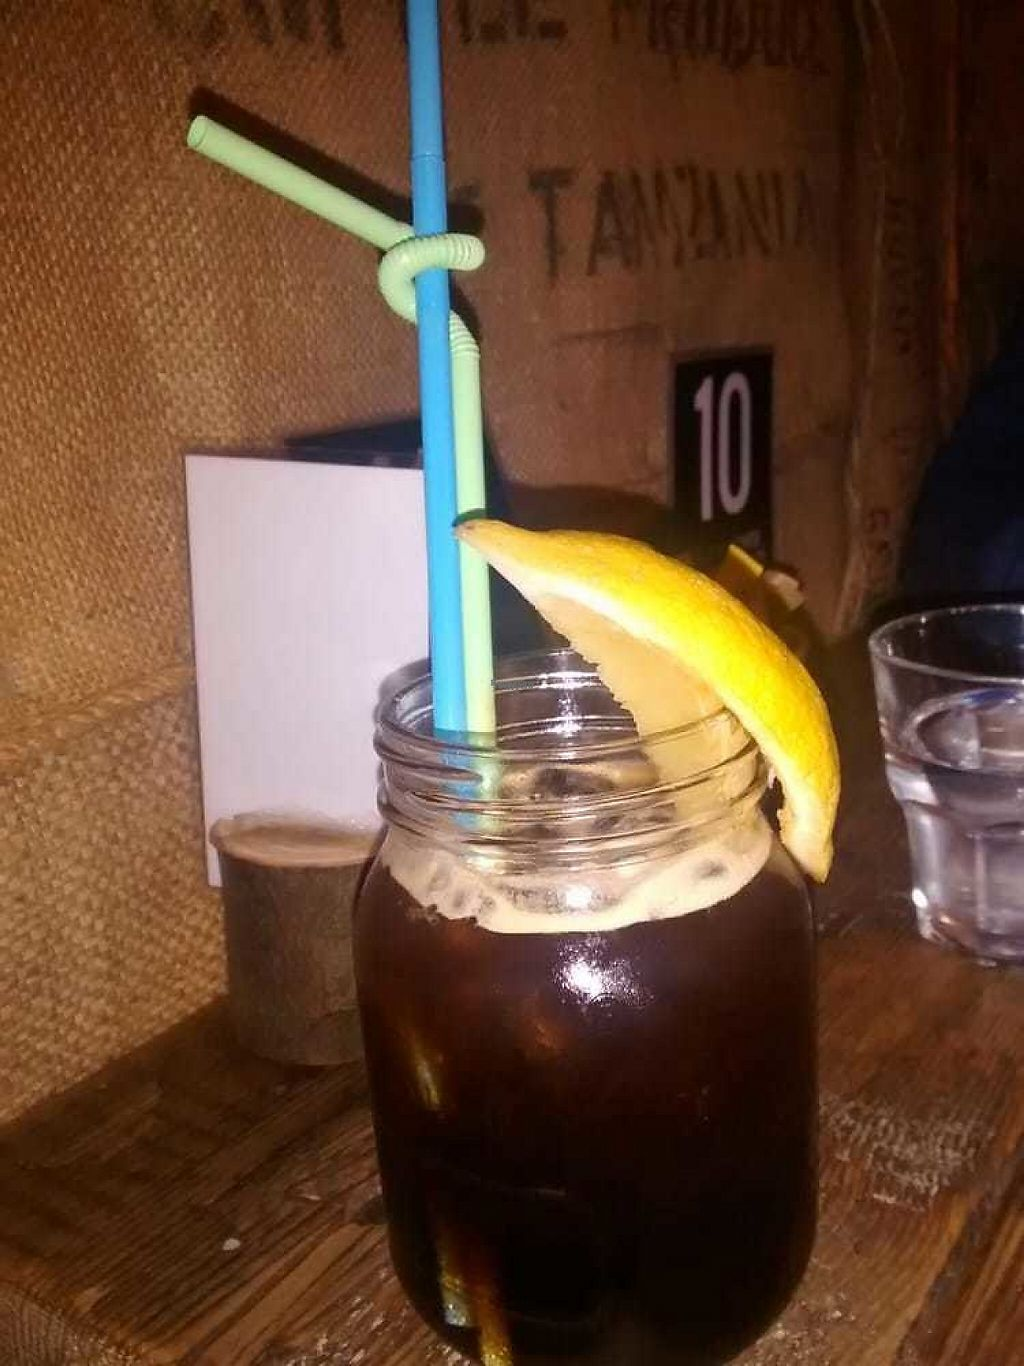 """Photo of CLOSED: The Caffeine Drip  by <a href=""""/members/profile/TrixieFirecracker"""">TrixieFirecracker</a> <br/>Iced cola-coffee with double espresso <br/> December 31, 2016  - <a href='/contact/abuse/image/72974/206631'>Report</a>"""